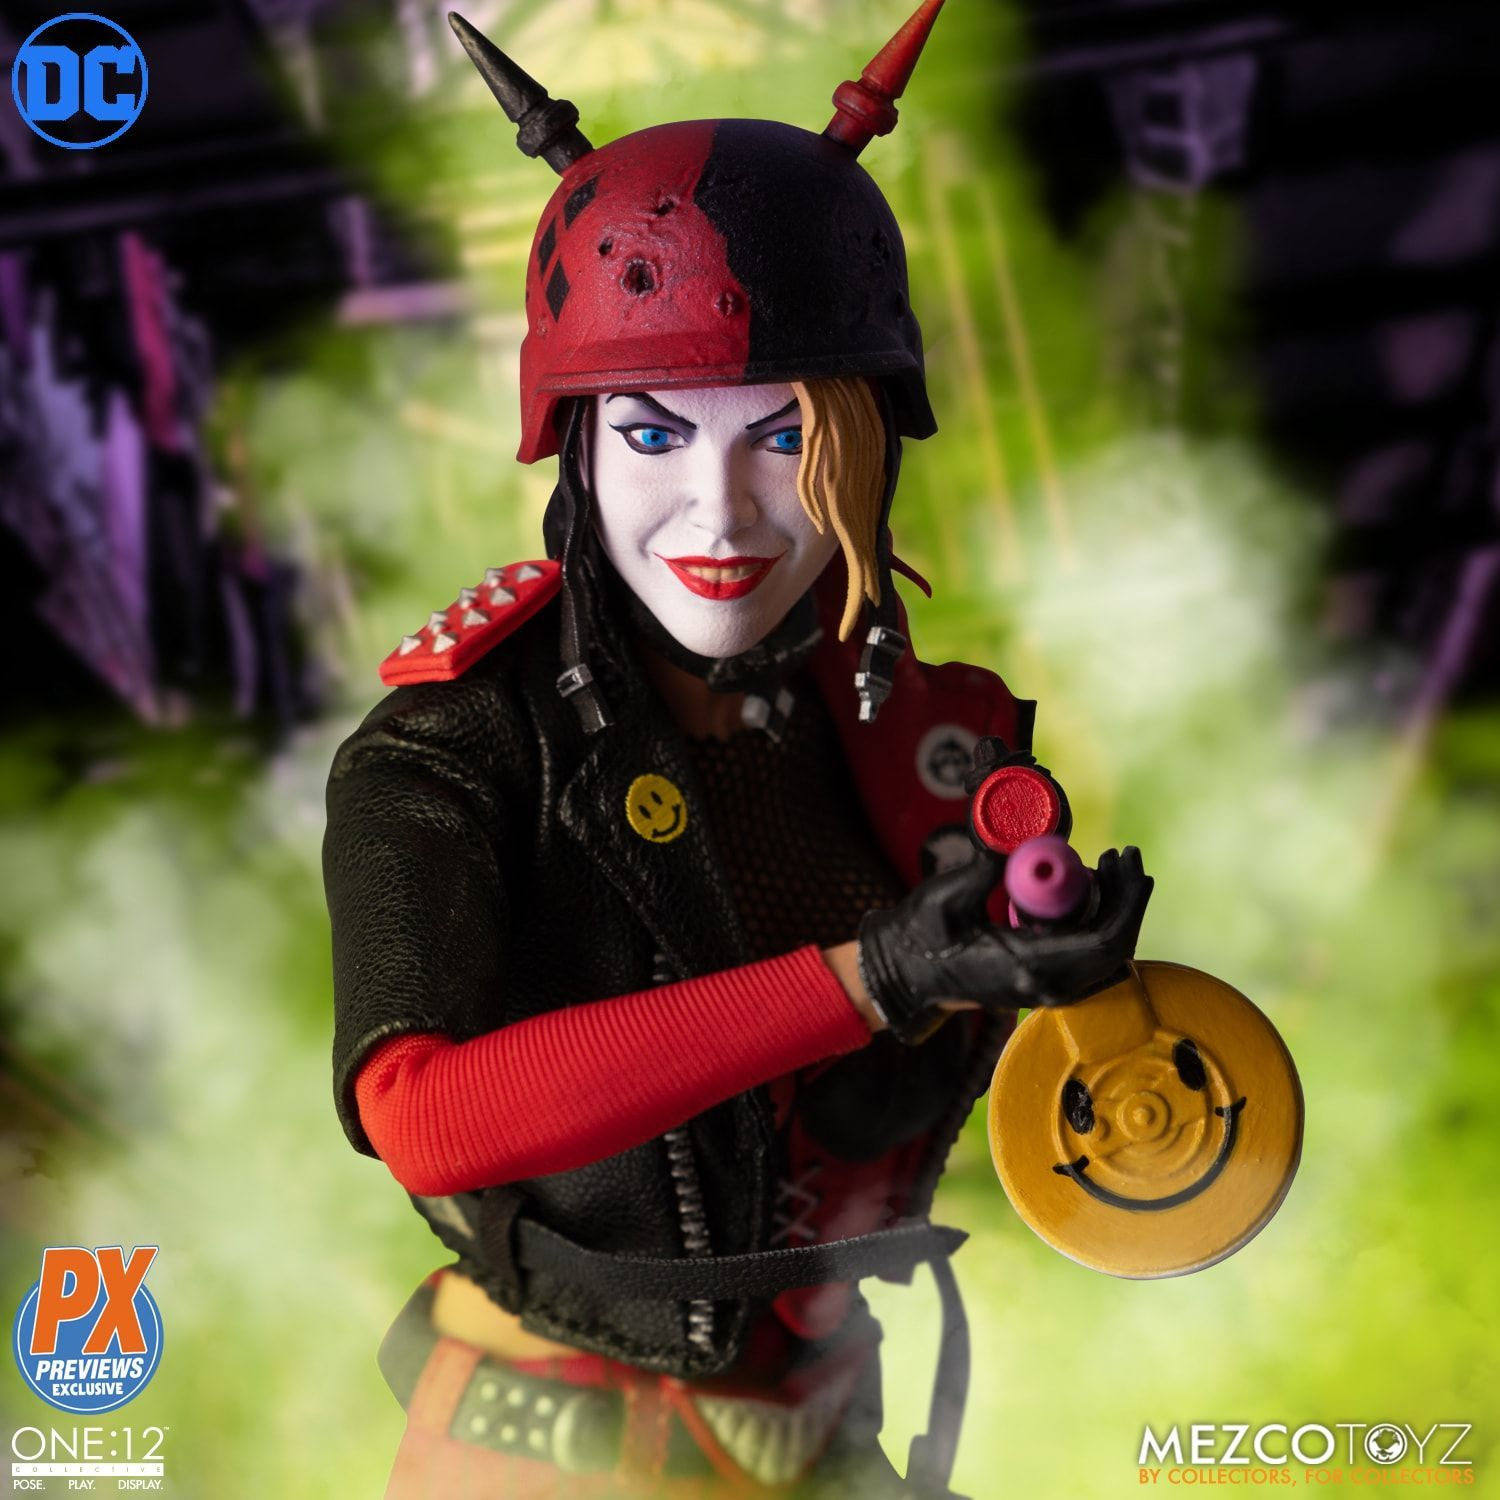 [ONE12] HarleyQuinn_PlayForKeeps_DC (PX) 008.jpg